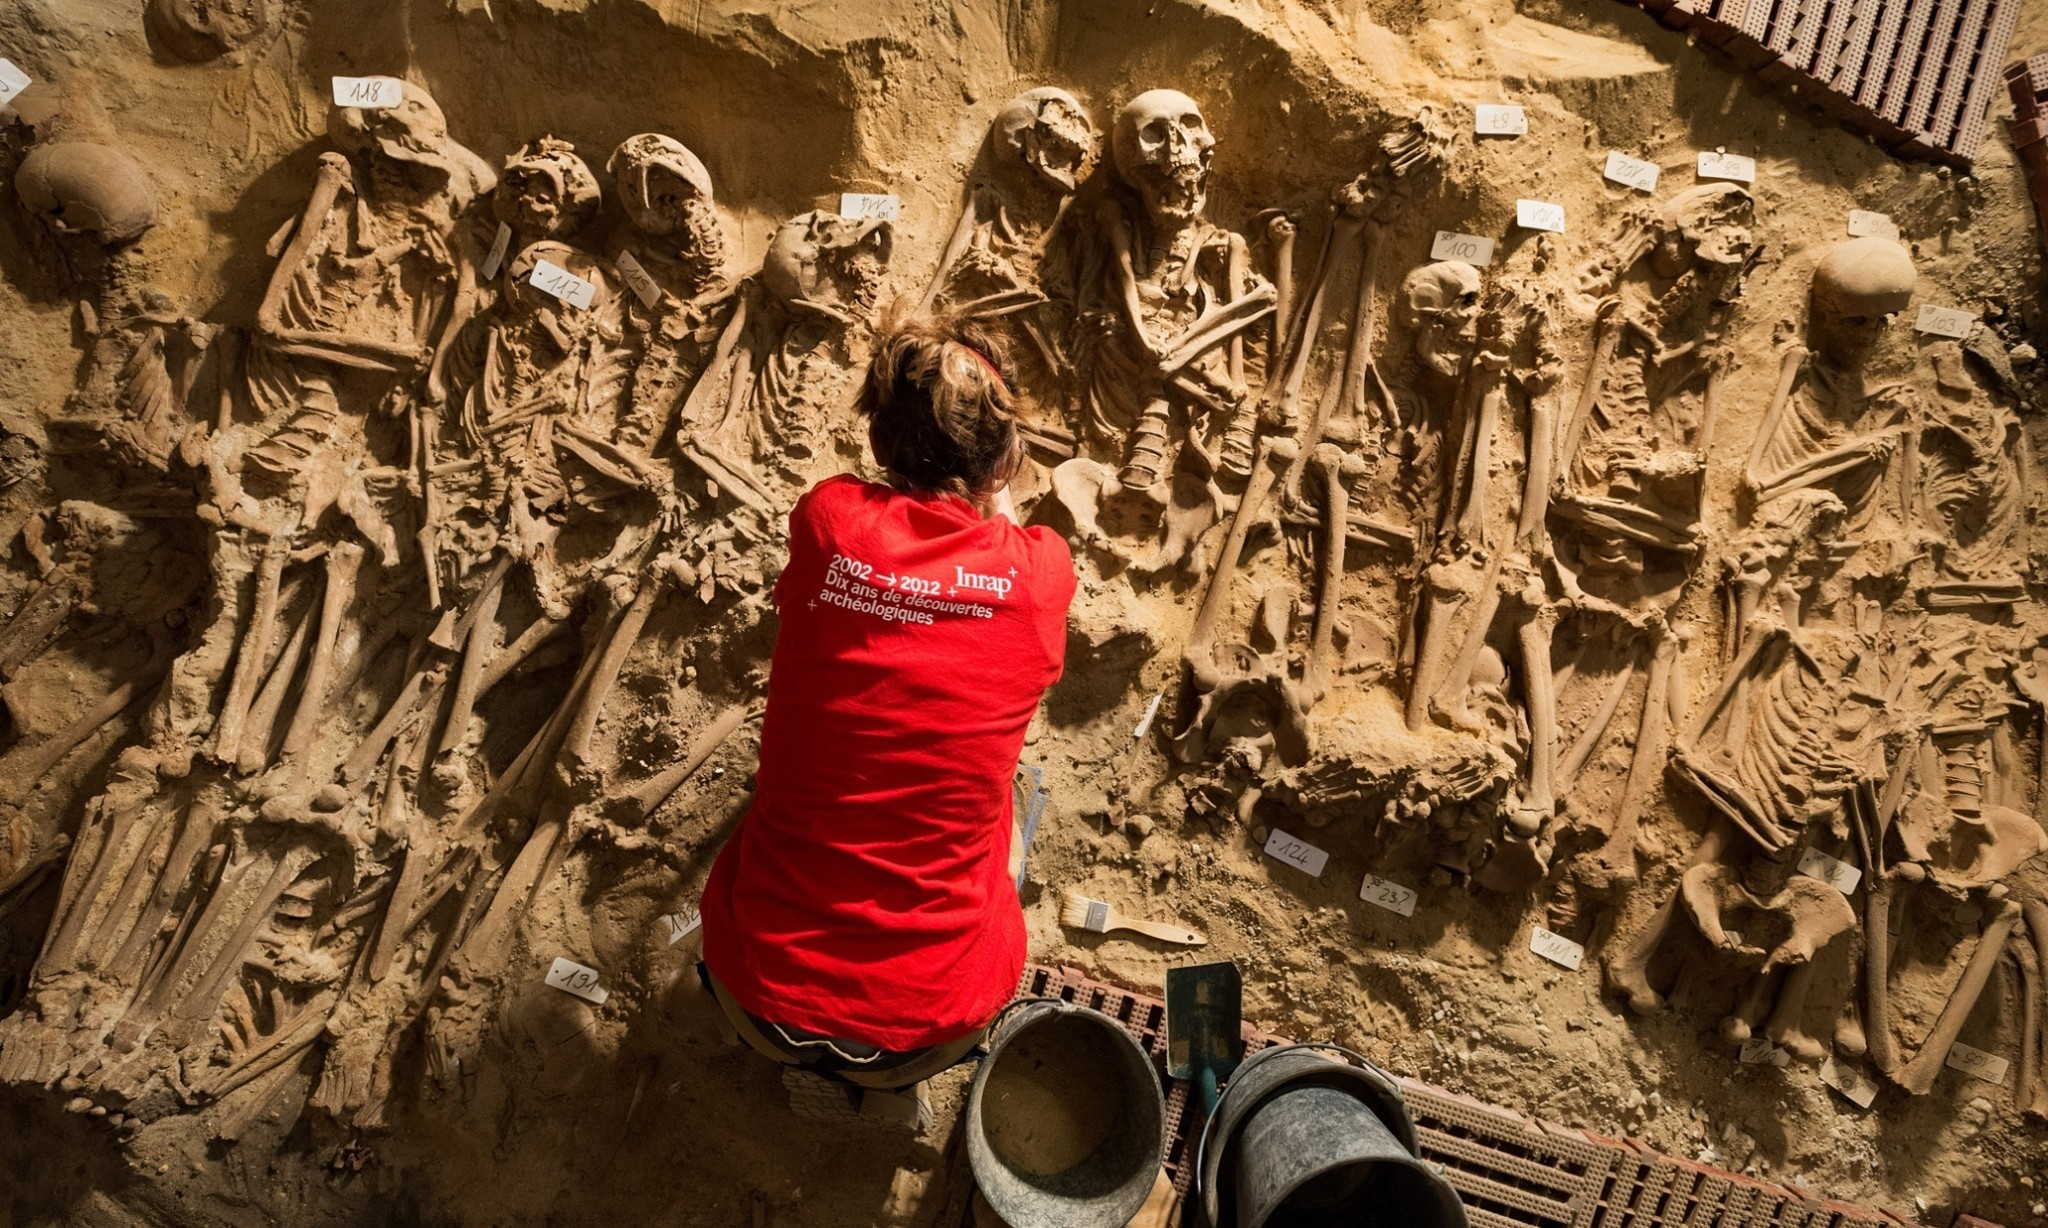 Parisians carry on shopping as mass graves are exhumed below their feet